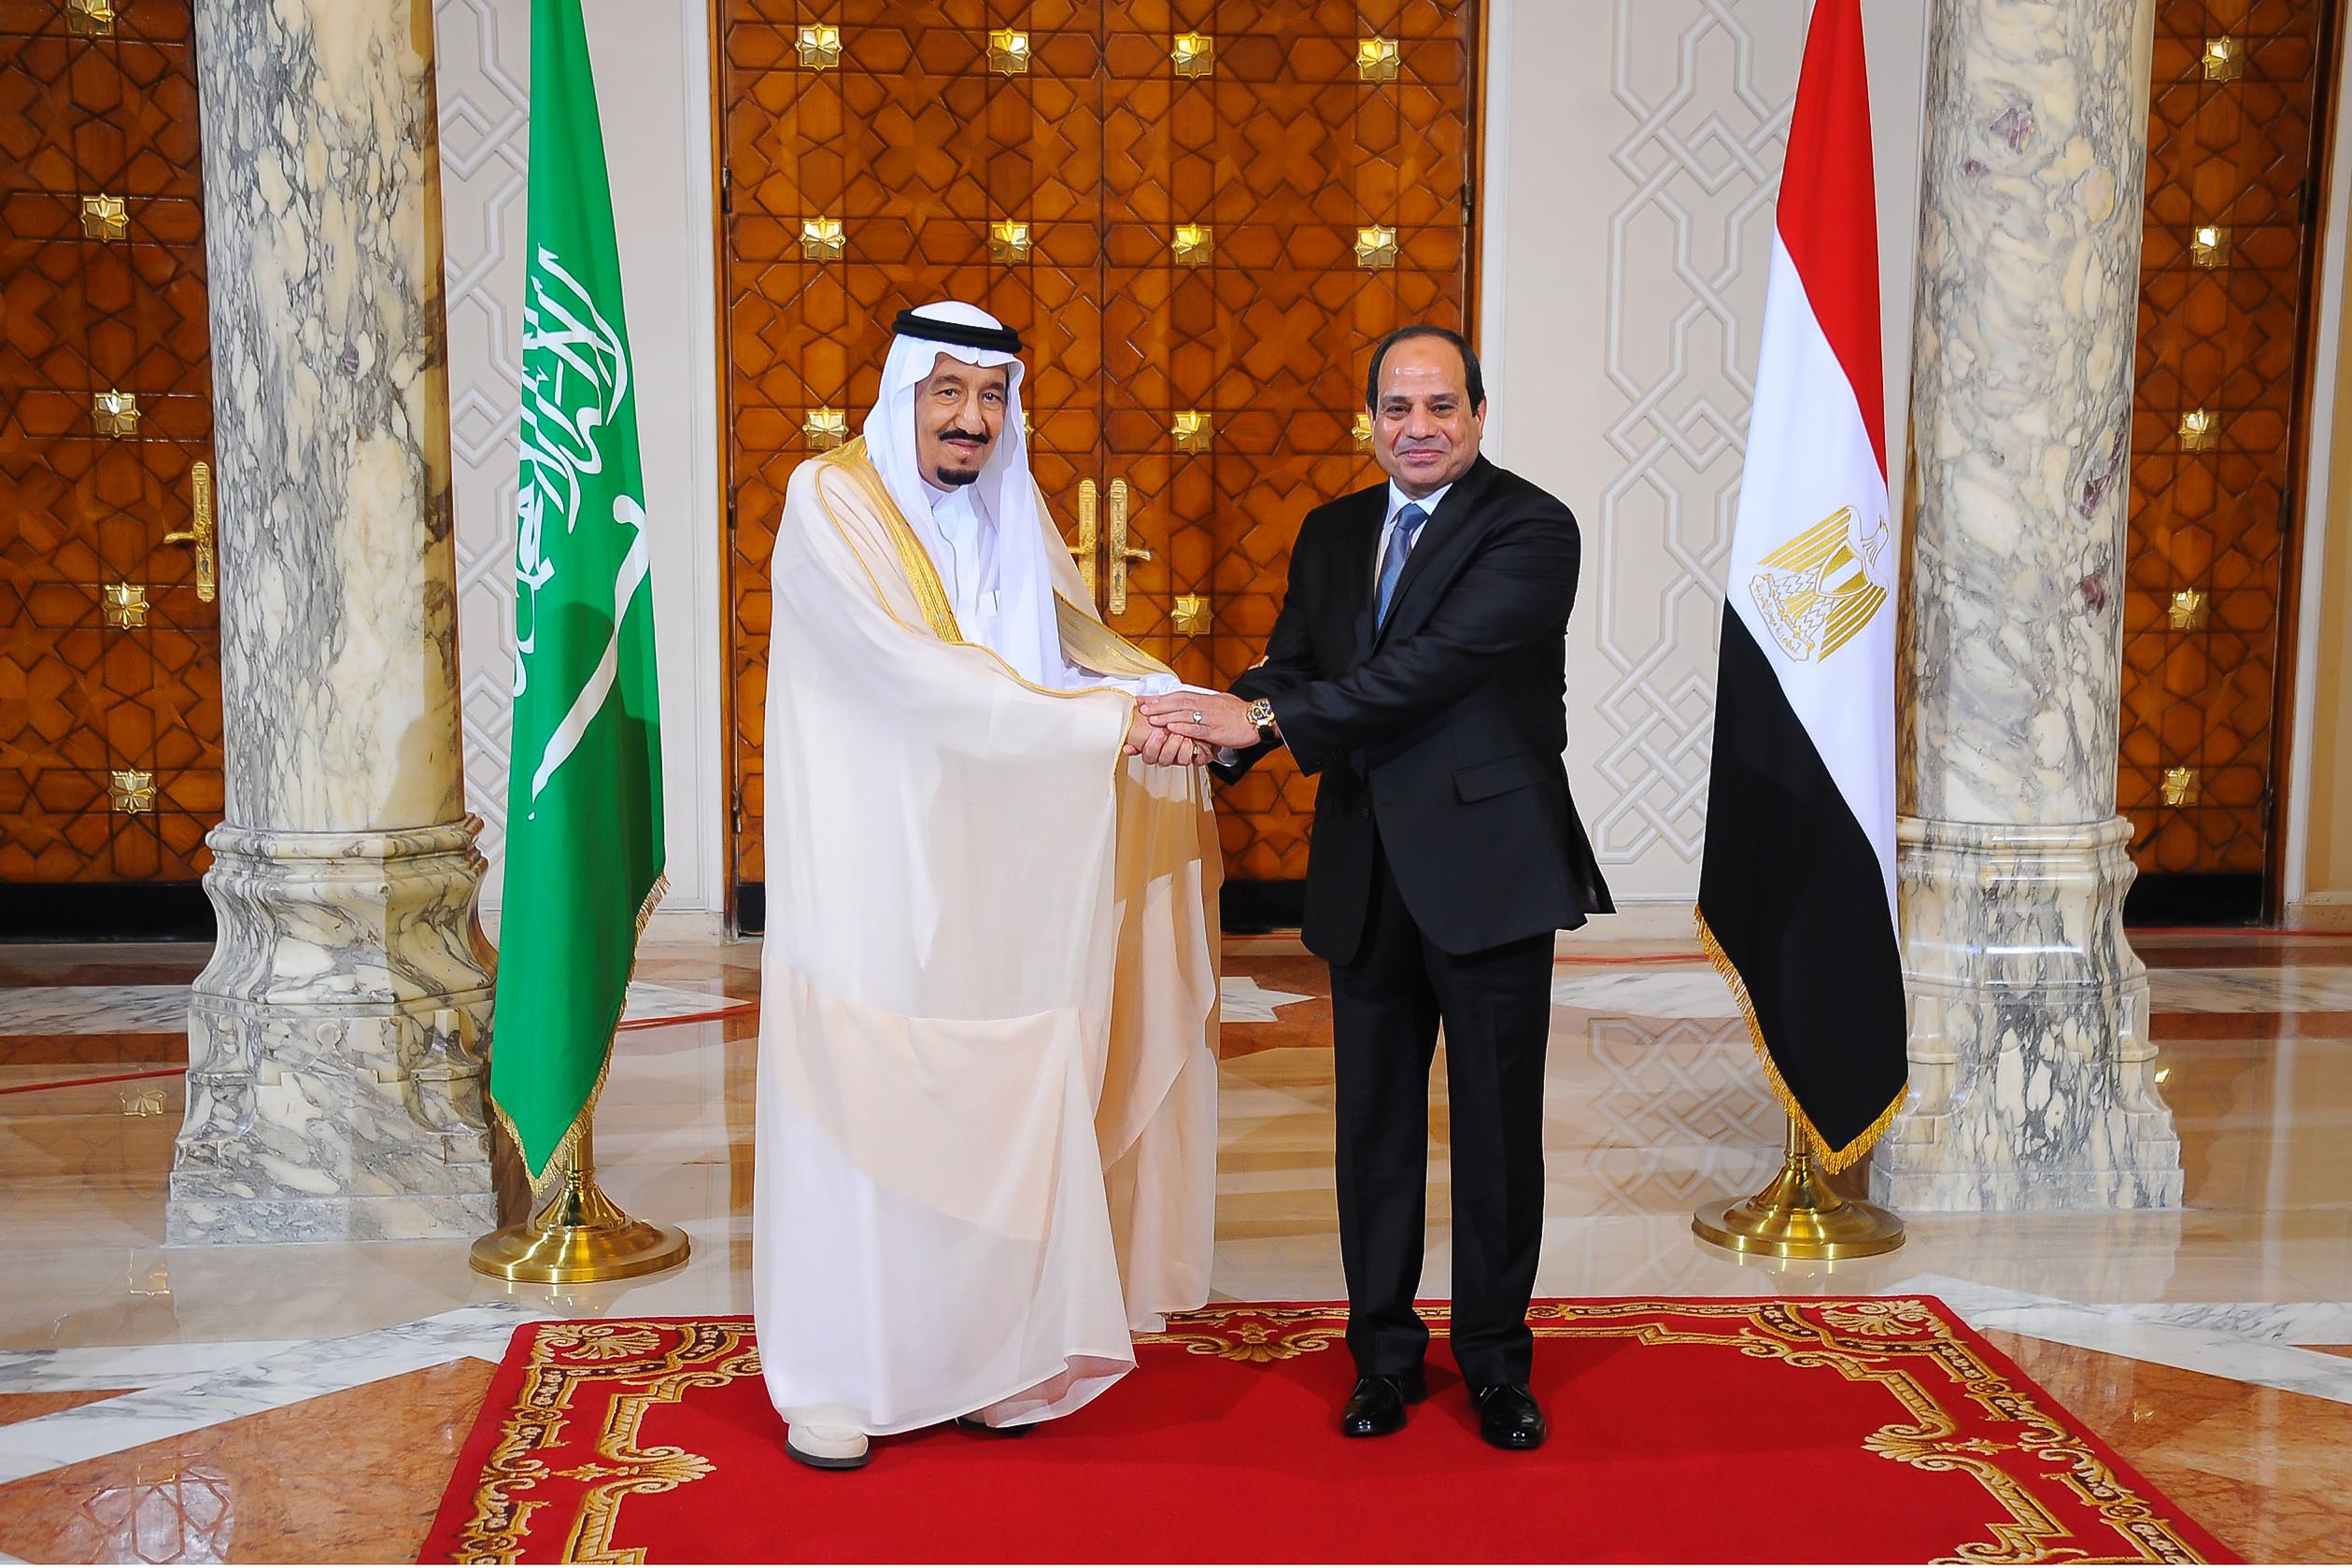 President of Egypt Abdel Fattah el-Sisi (R) welcomes King Salman bin Abdulaziz Al Saud of Saudi Arabia (L) at the Egyptian Presidential Palace in Cairo, Egypt on April 7, 2016. (Egyptian Presidency/Anadolu Agency--Getty Images)